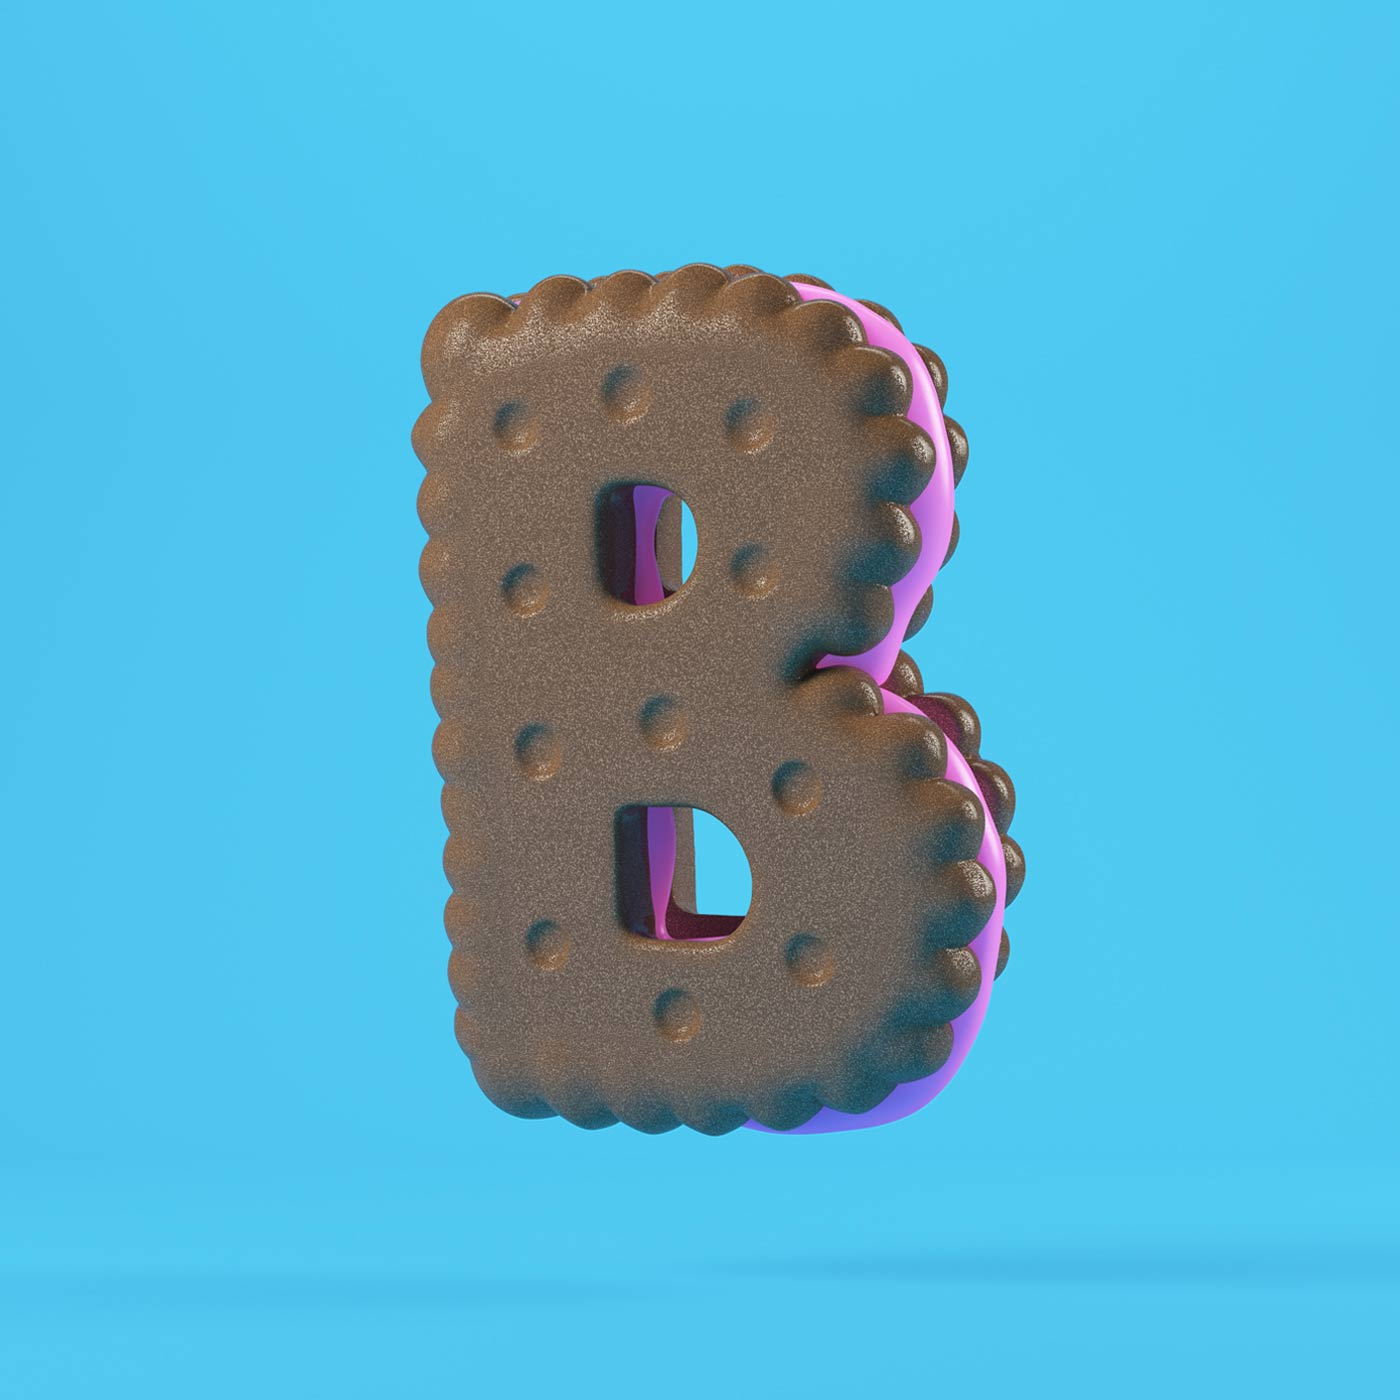 FOOD 3DFOOD FOODALPHABET CESS 3D 3DTYPE LETTERING CGI 3DARTIST COOKIE